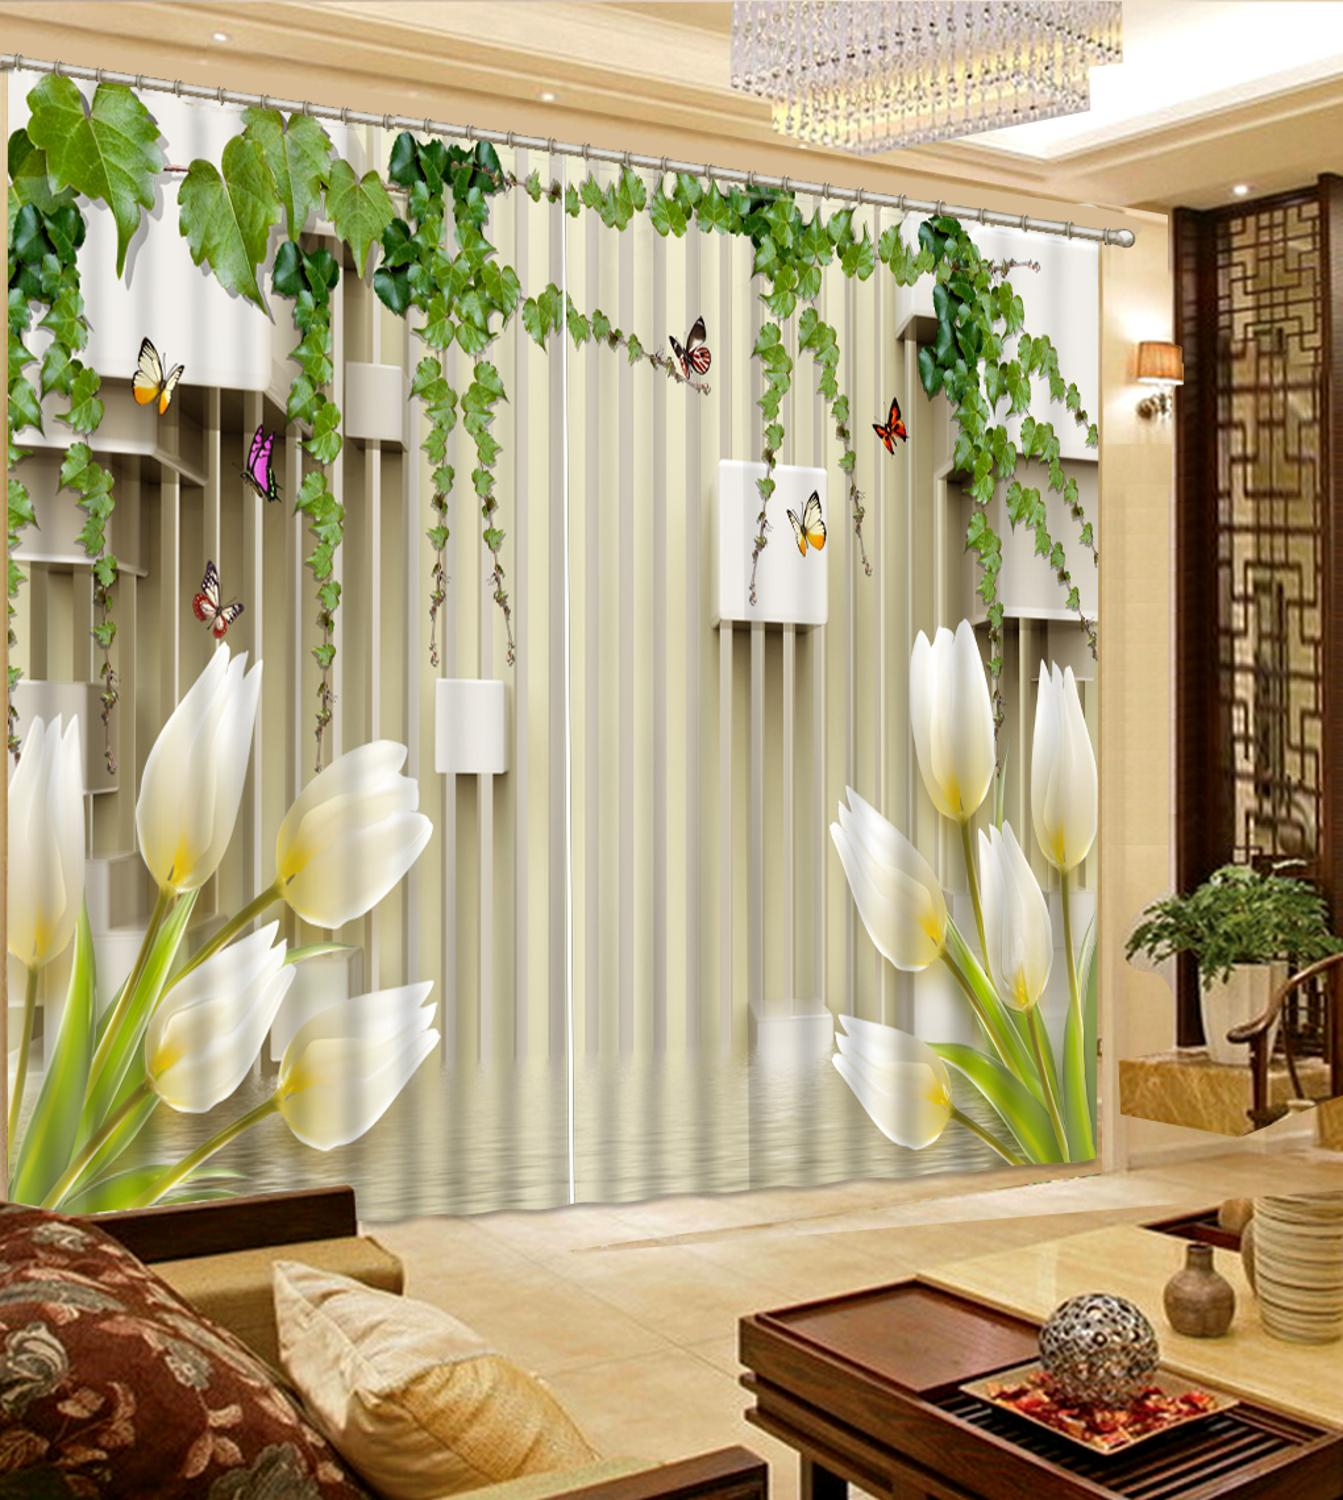 white lily fower curtains 3D Window Curtain Dinosaur print Luxury Blackout For Living Room Decoration curtains in Curtains from Home Garden